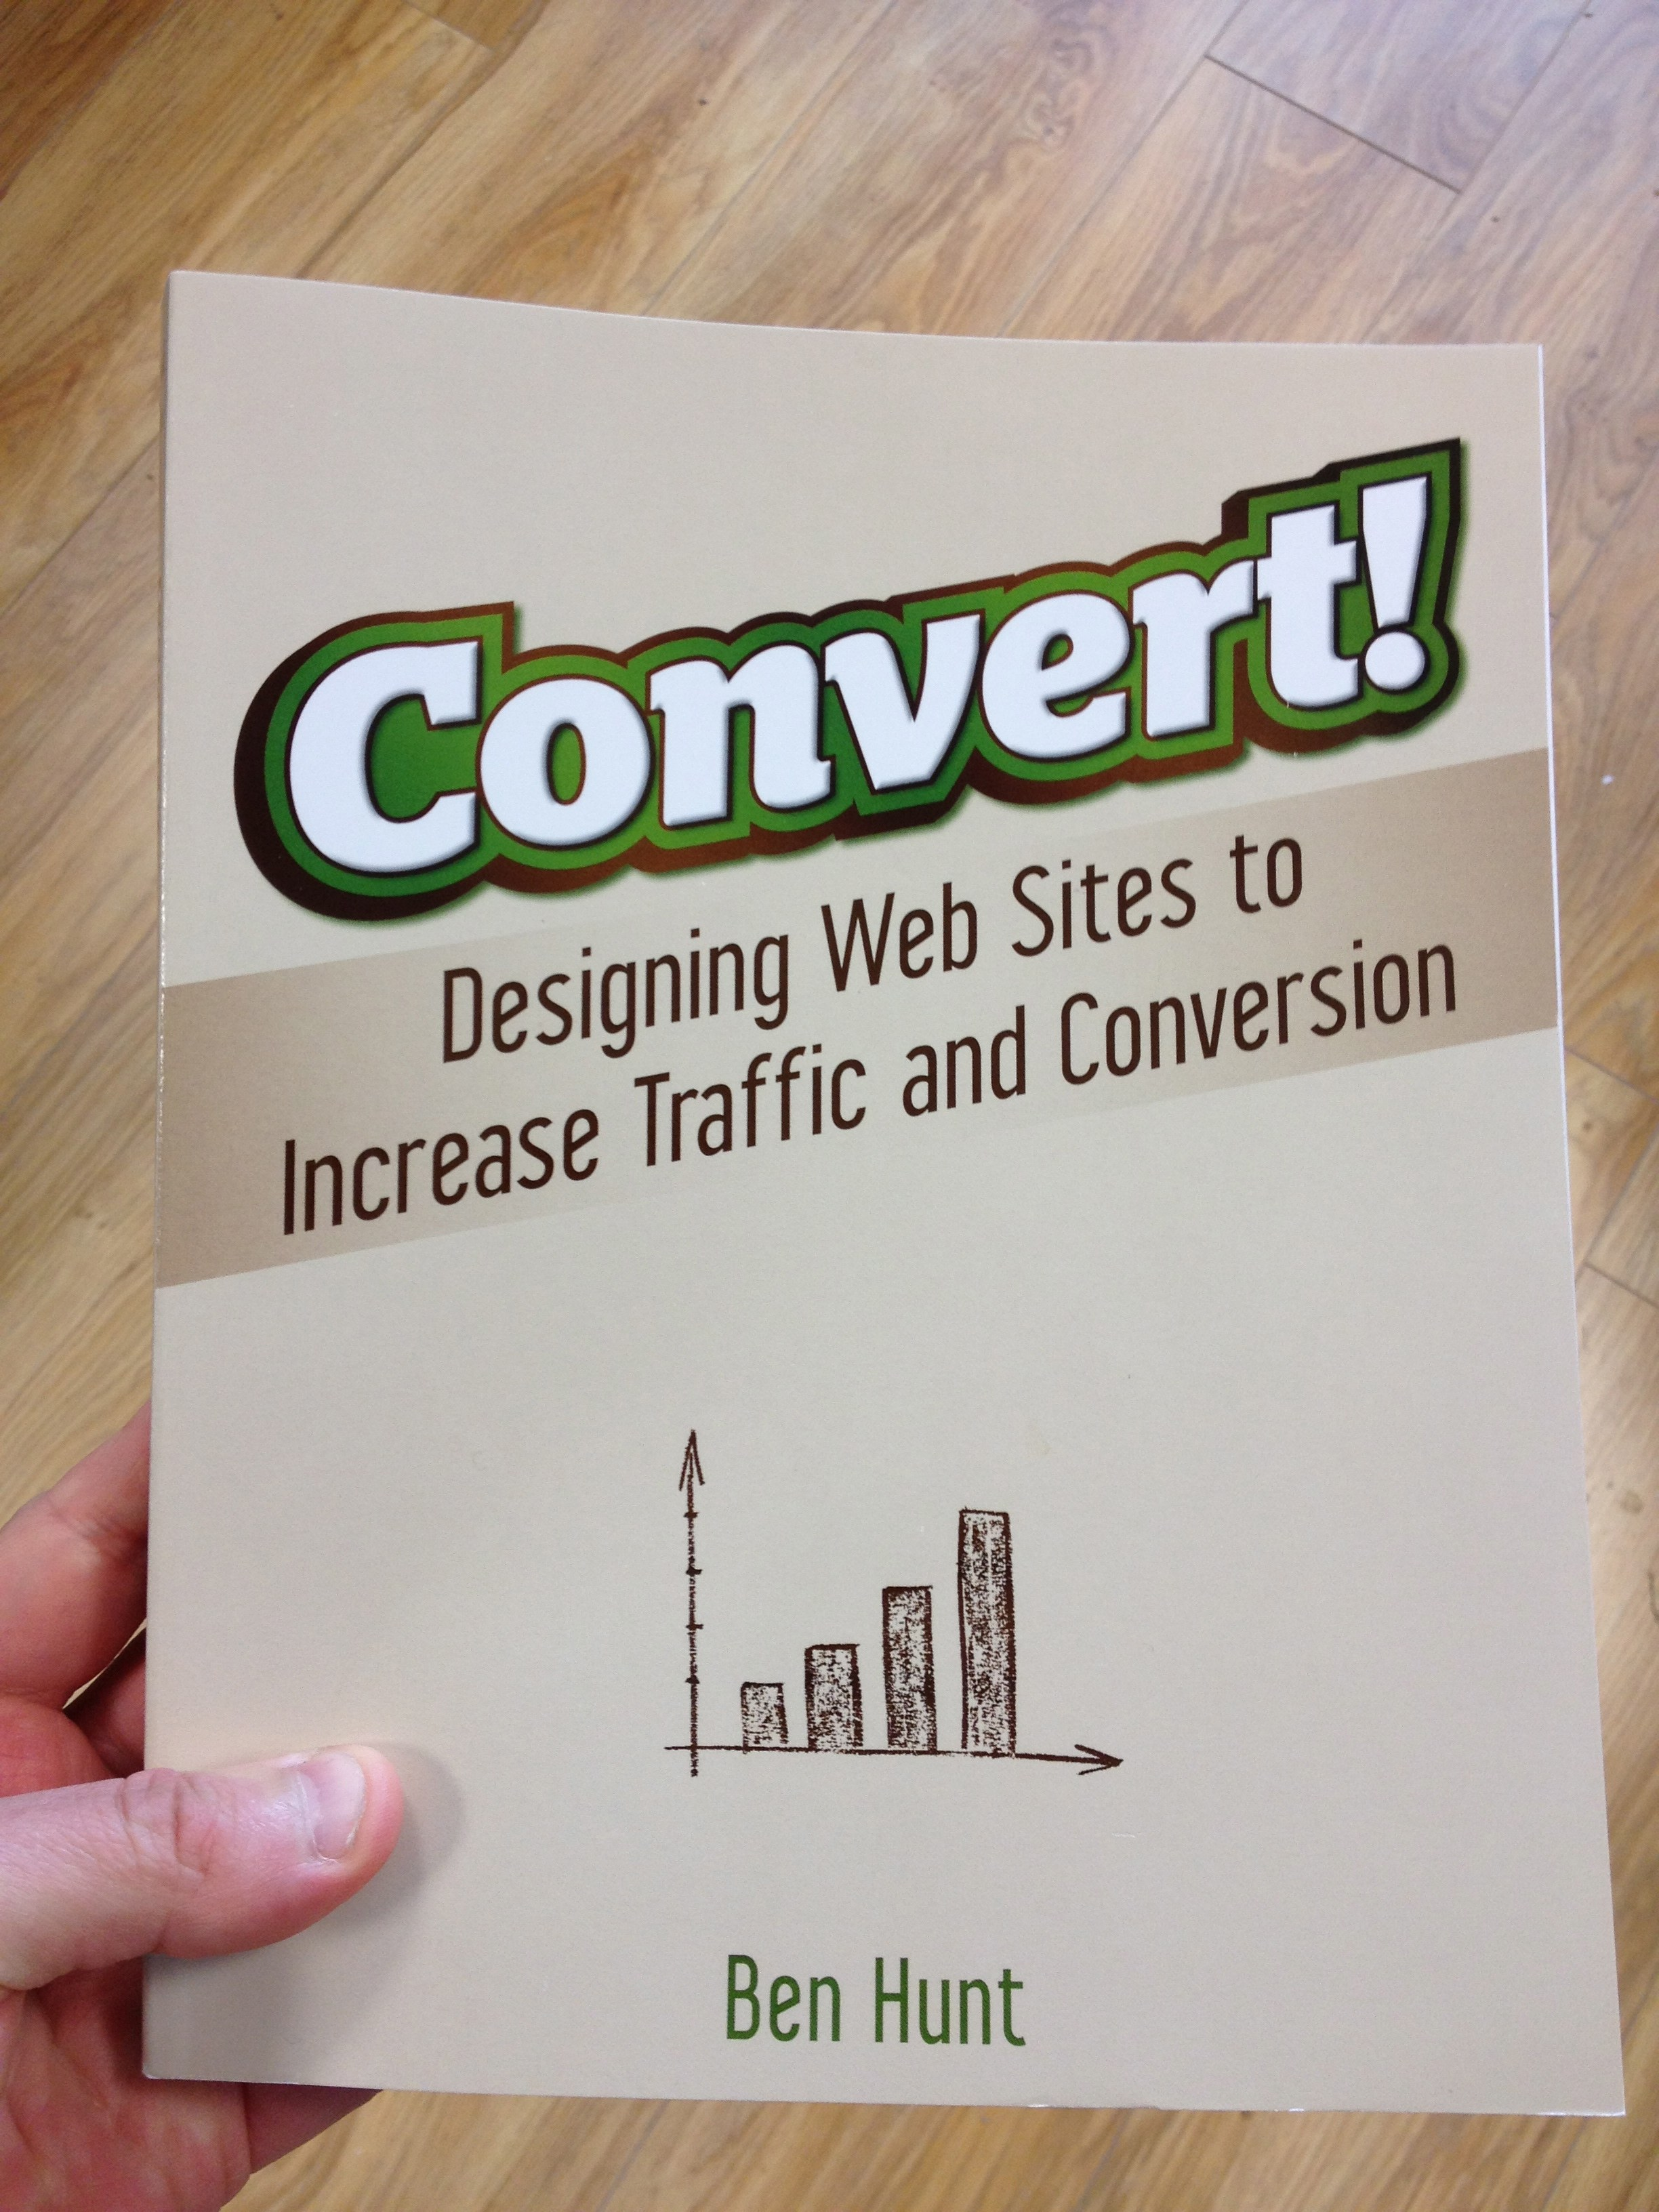 Convert - Designing Web Sites to Increase Traffic and Conversion